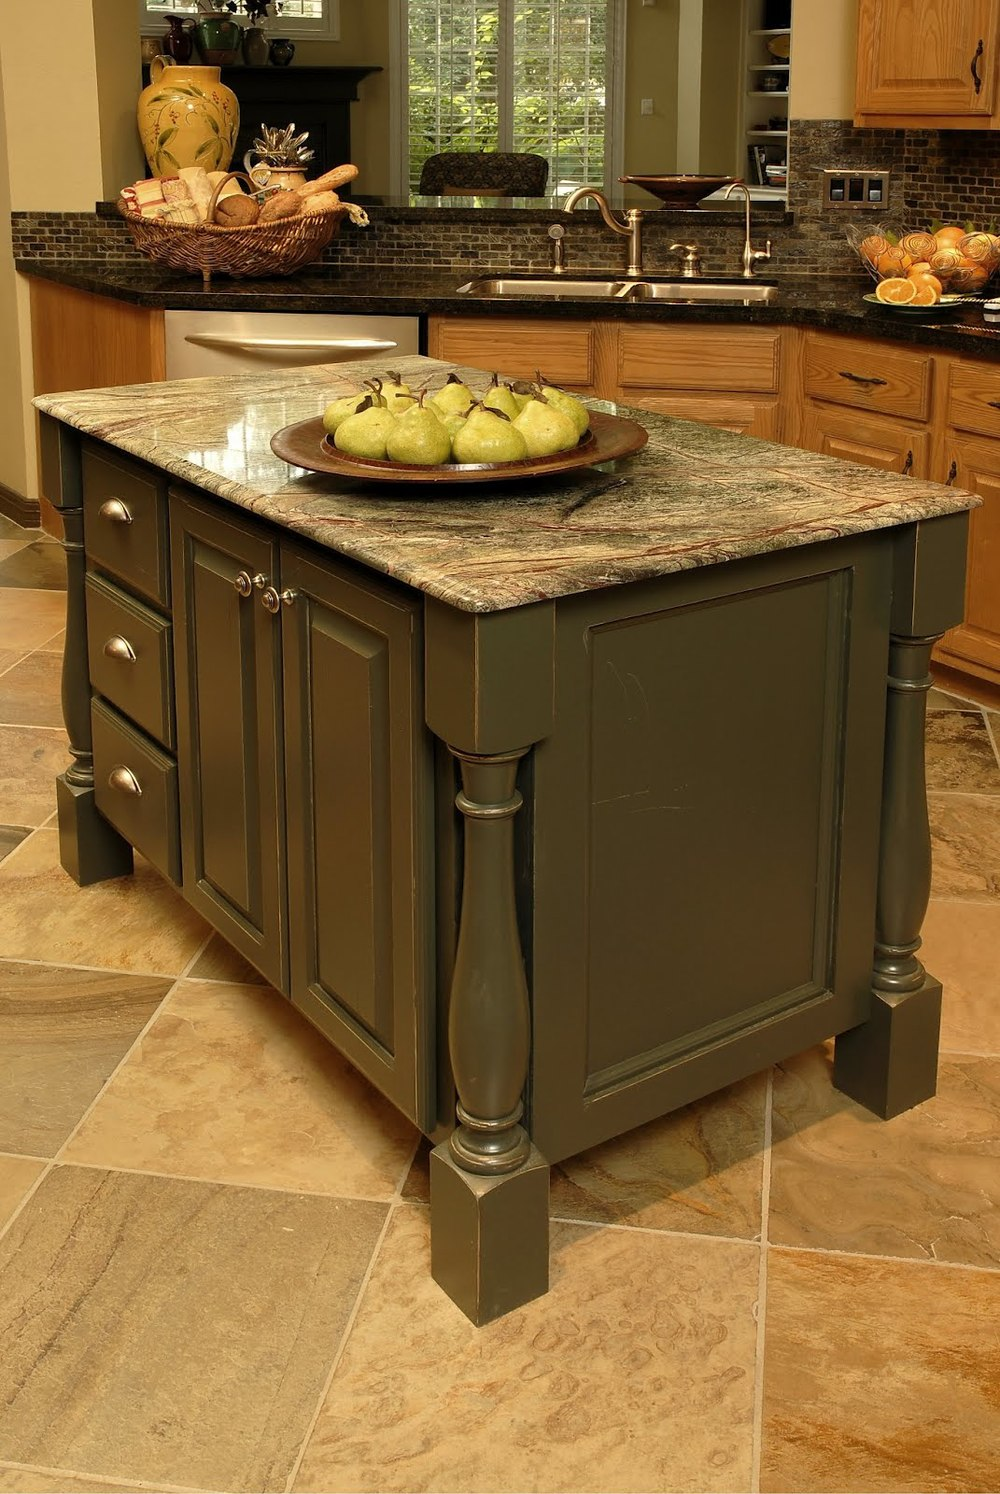 ESIGNED by | Carla Aston #kitchenisland #kitchenremodelingideas